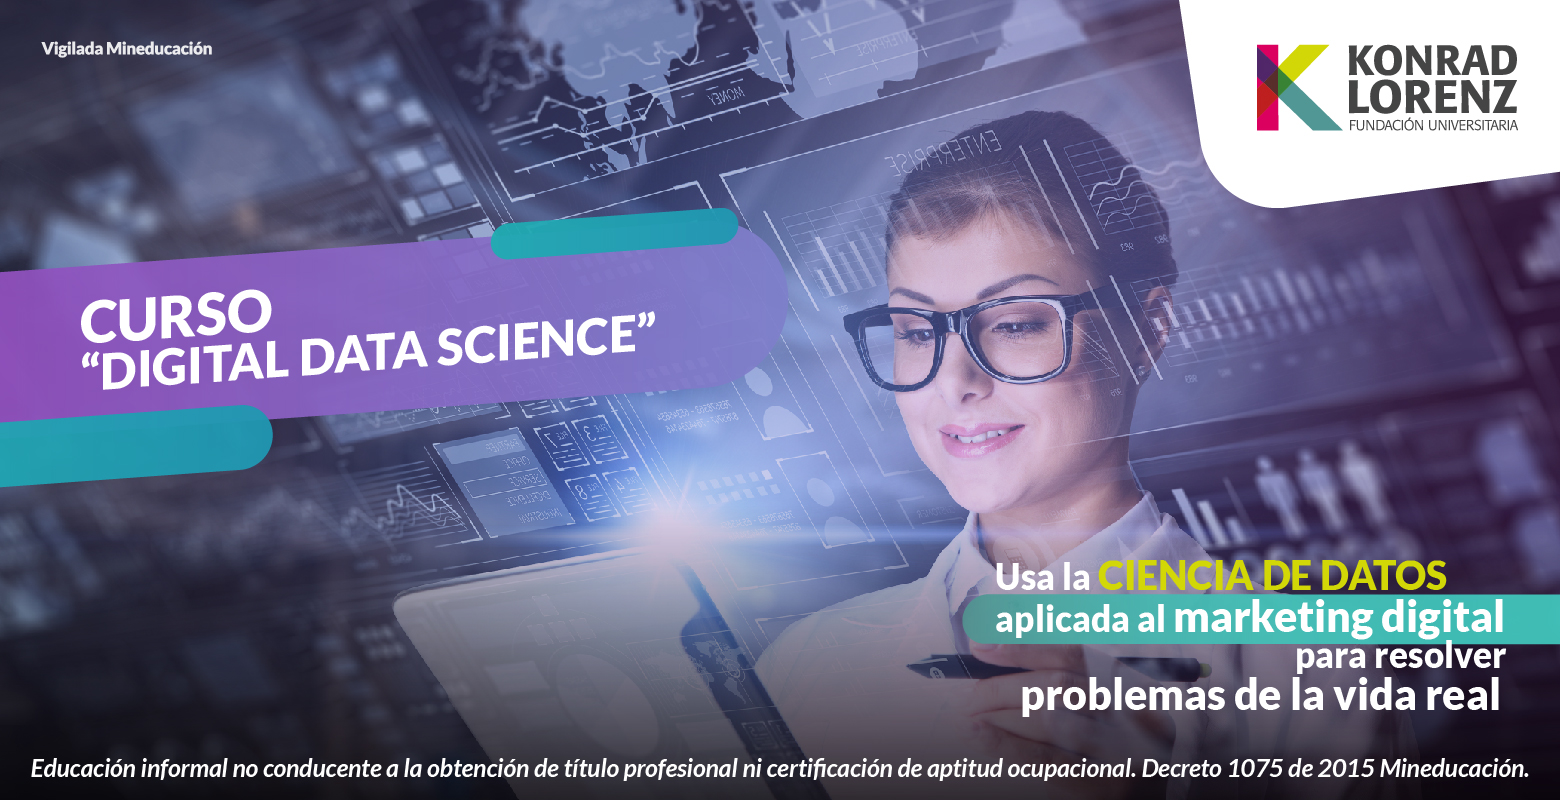 Diplomado en Digital Data Science